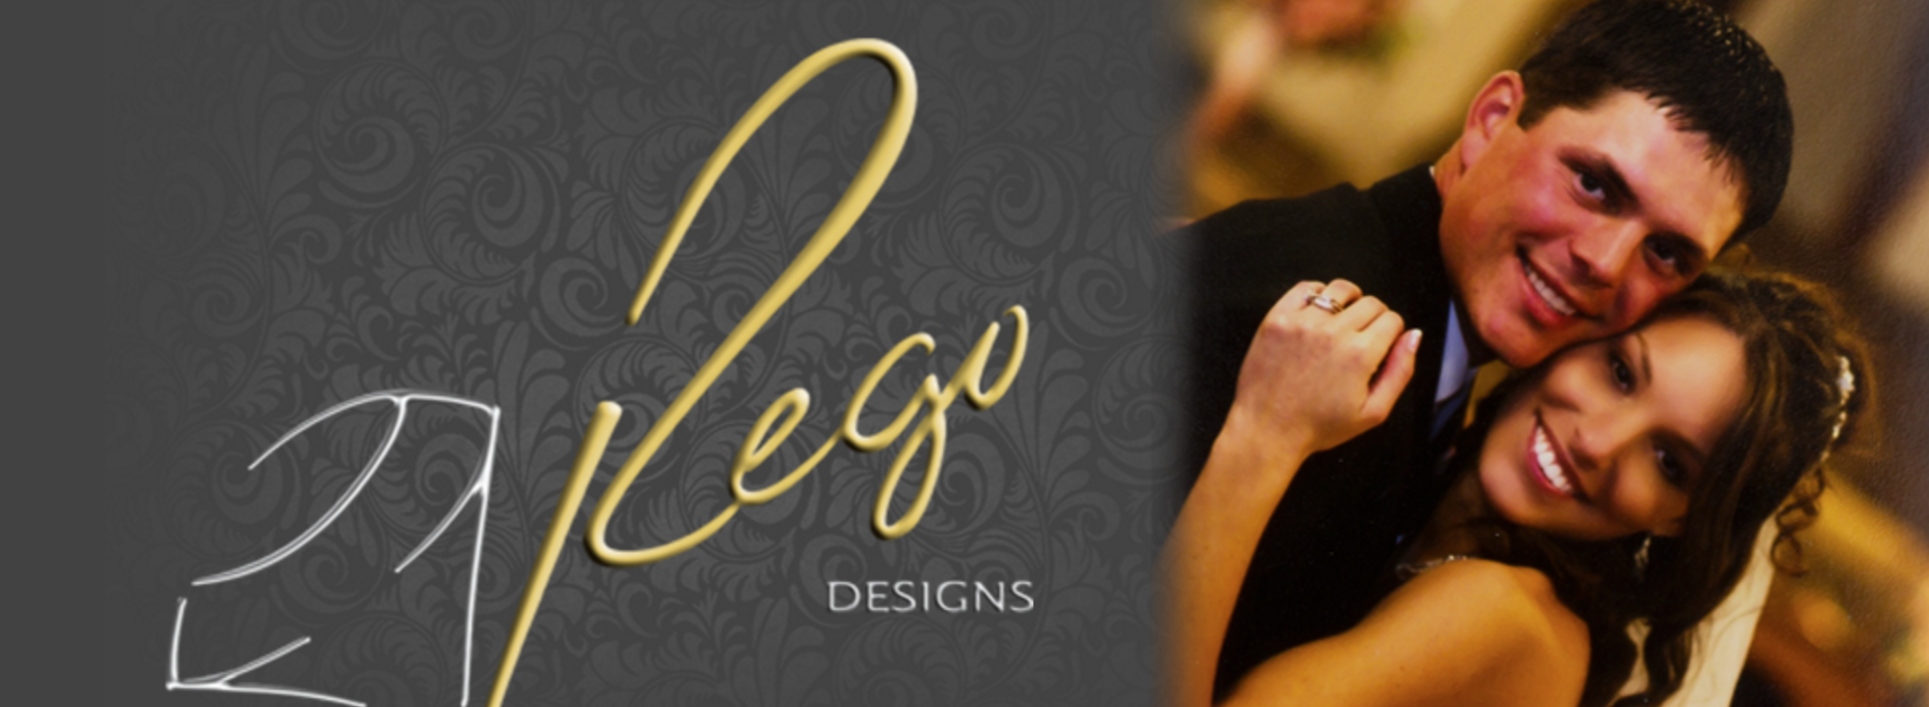 Fernbaugh's Jewelers Rego Designs